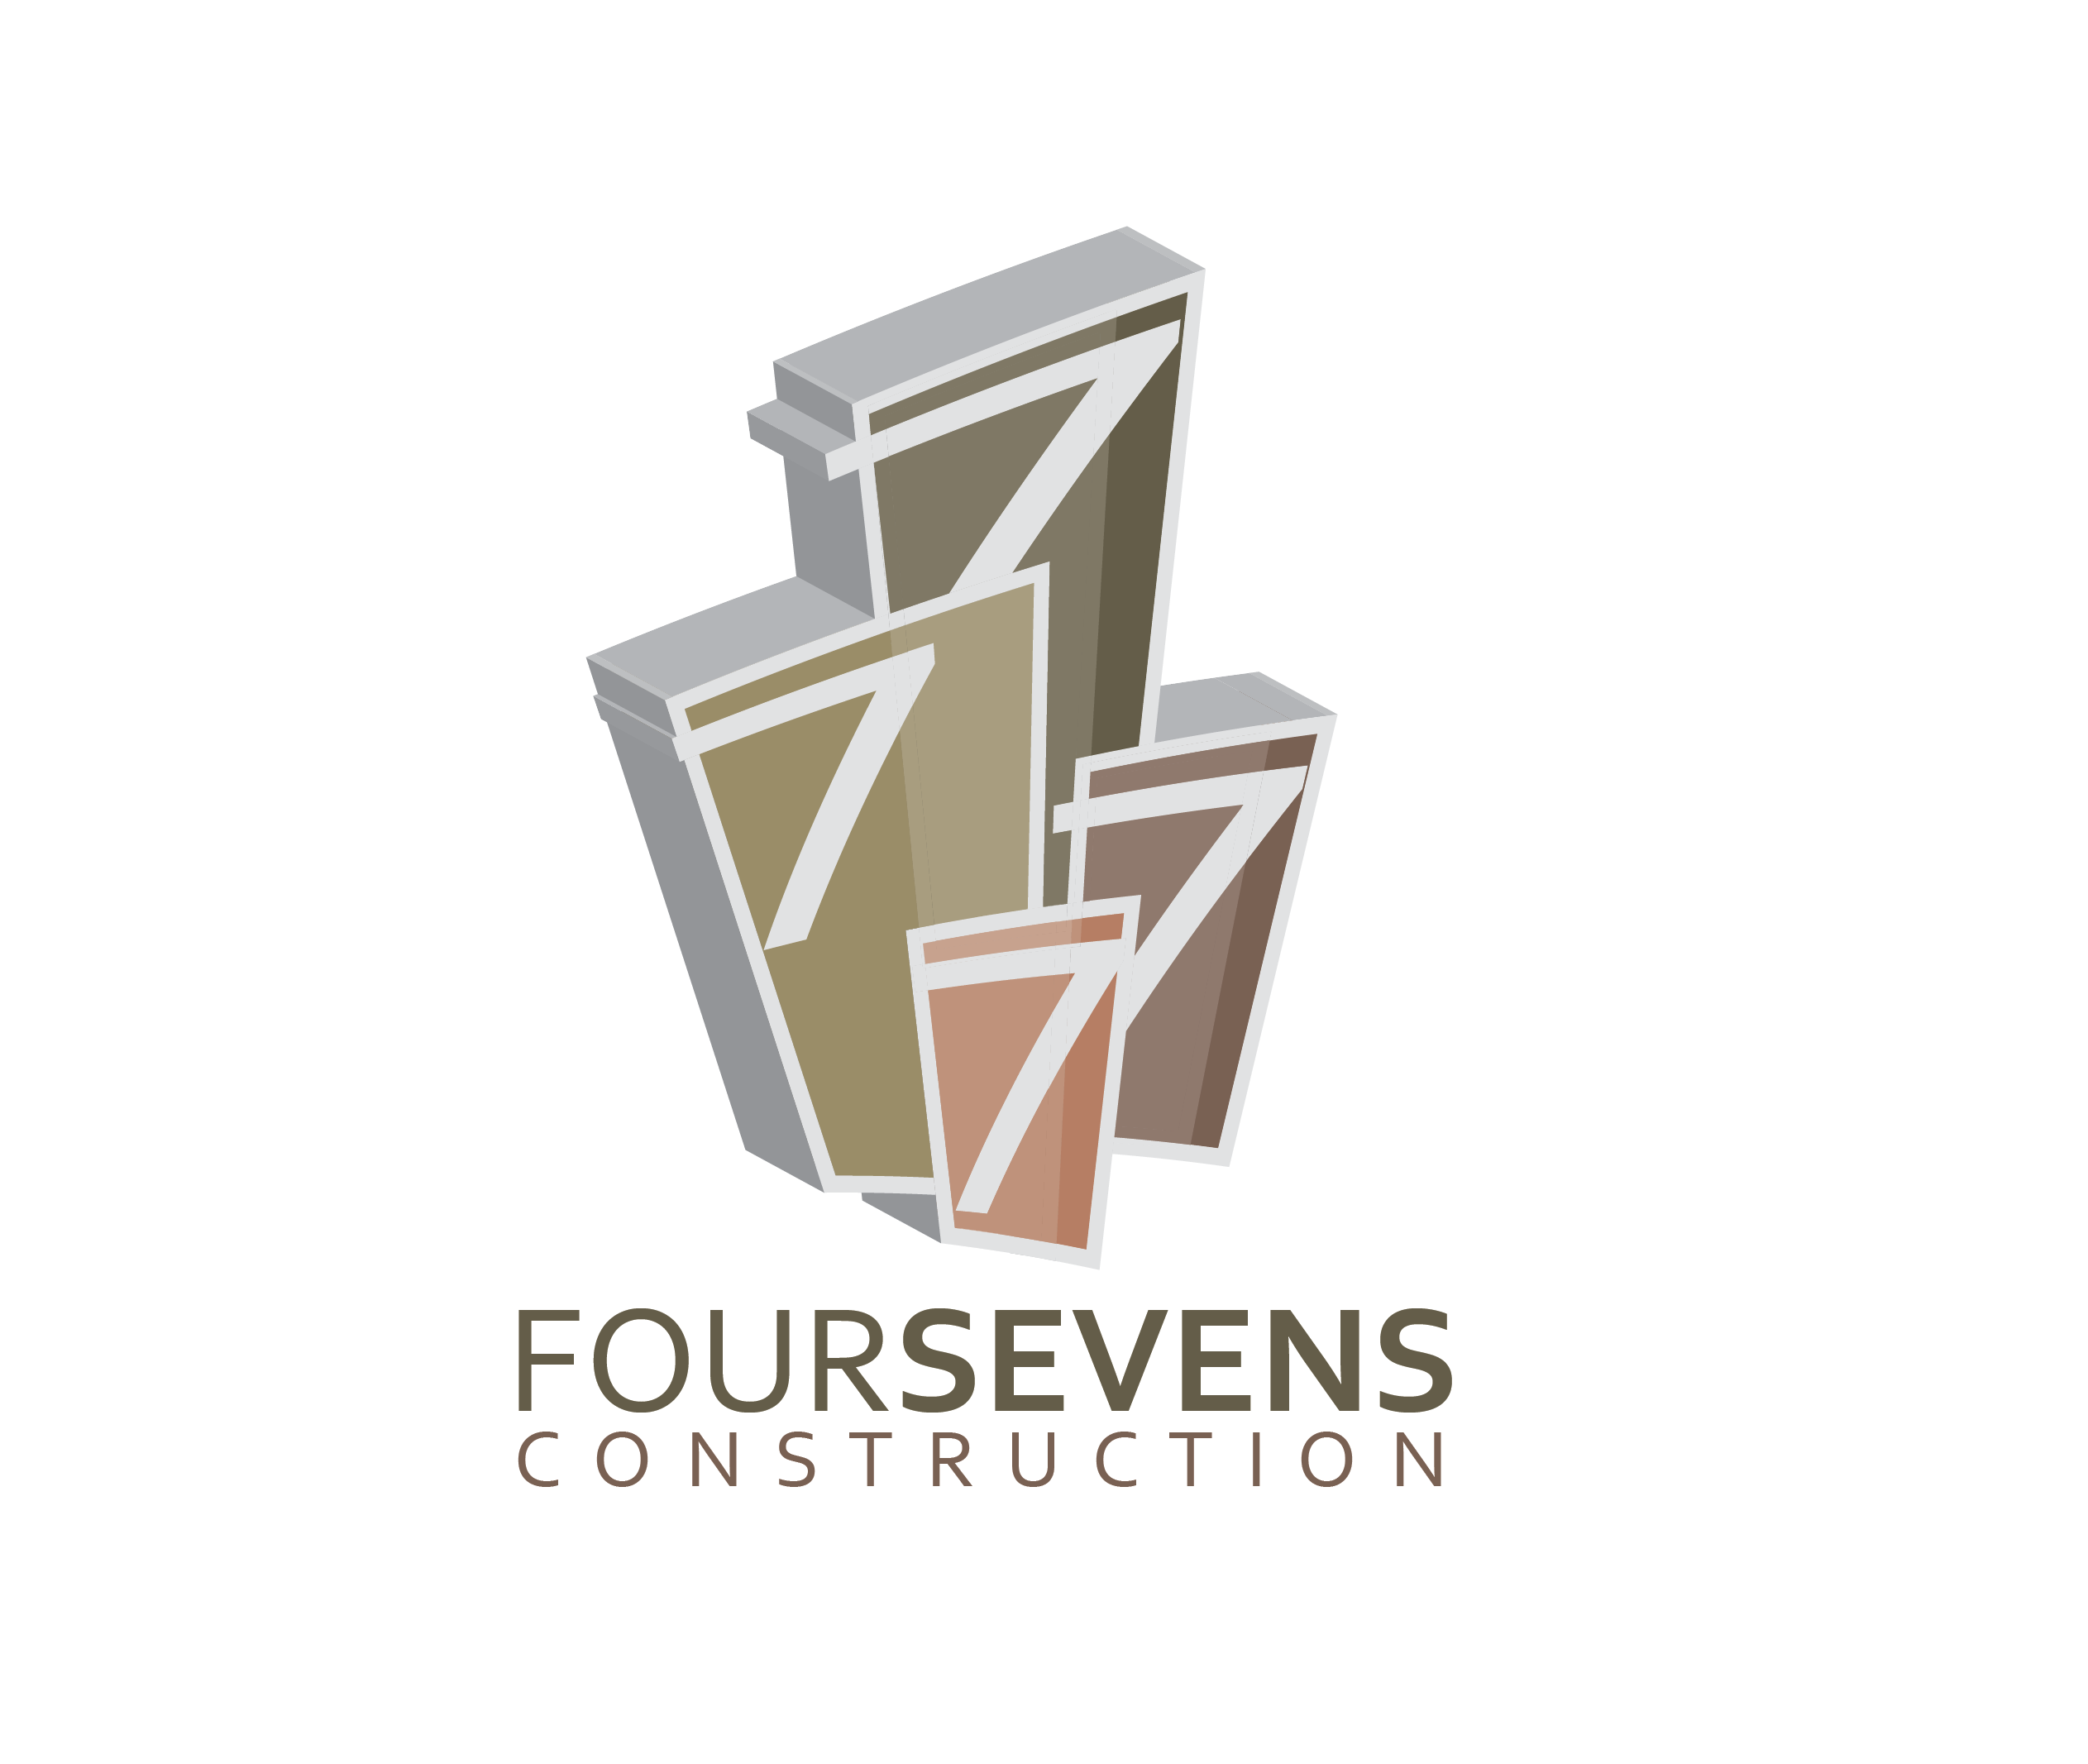 Logo Design by Tim Holley - Entry No. 74 in the Logo Design Contest New Logo Design for foursevens.